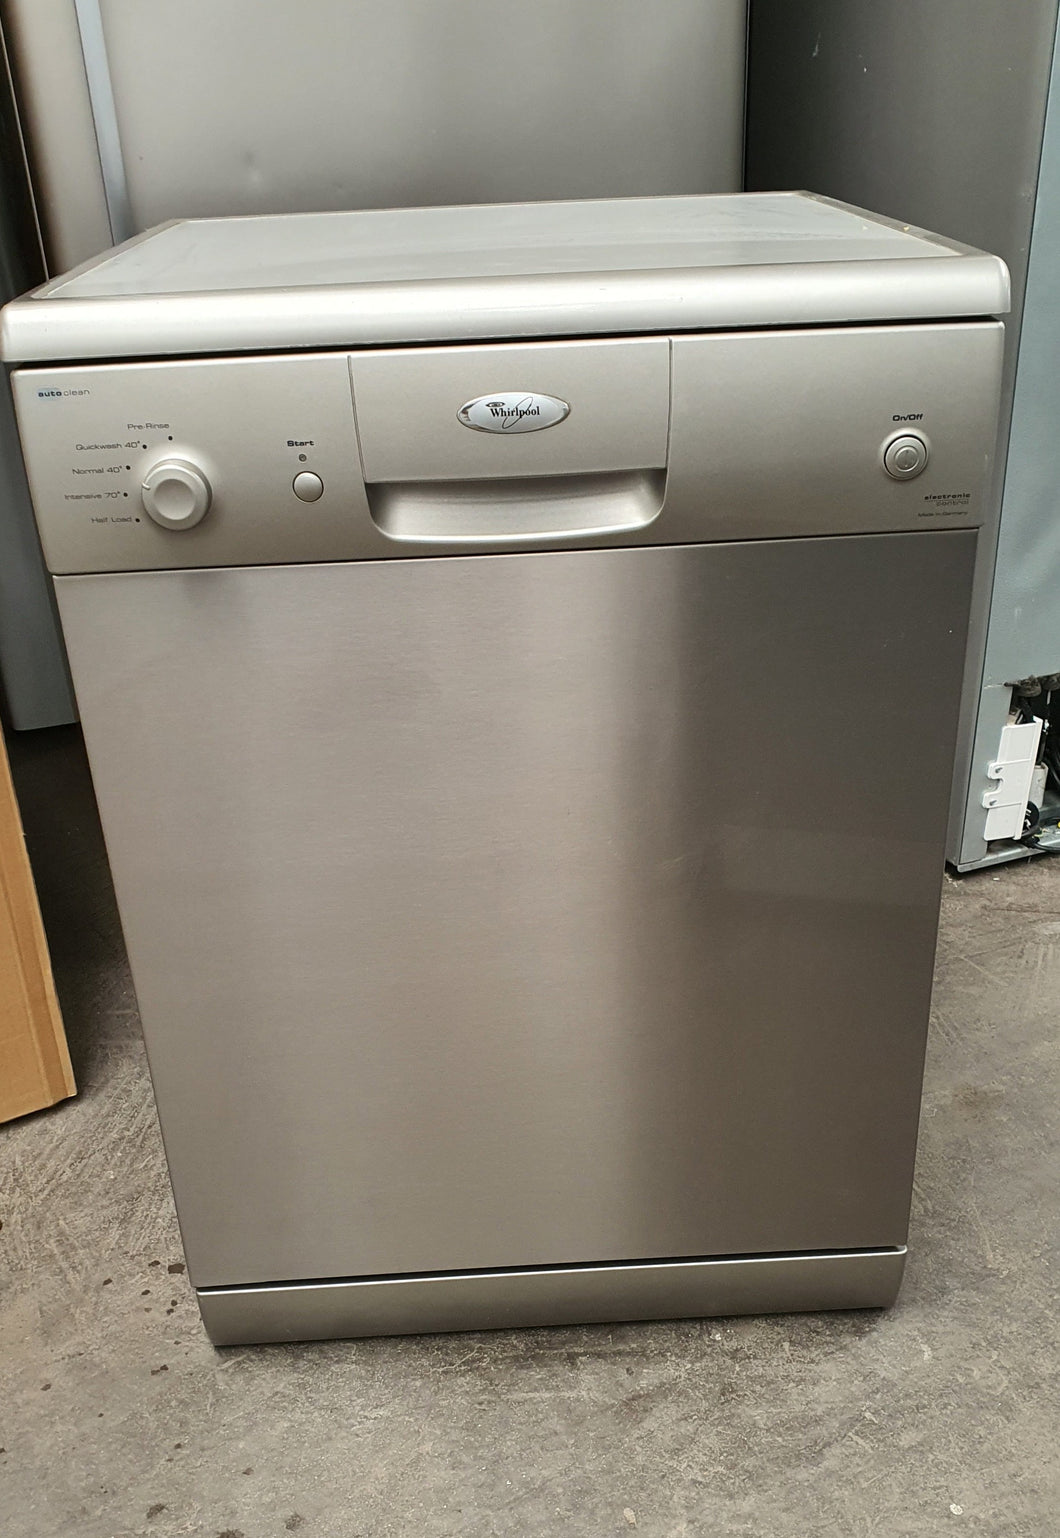 Whirlpool Stainless Steel Dishwasher - Made in Germany